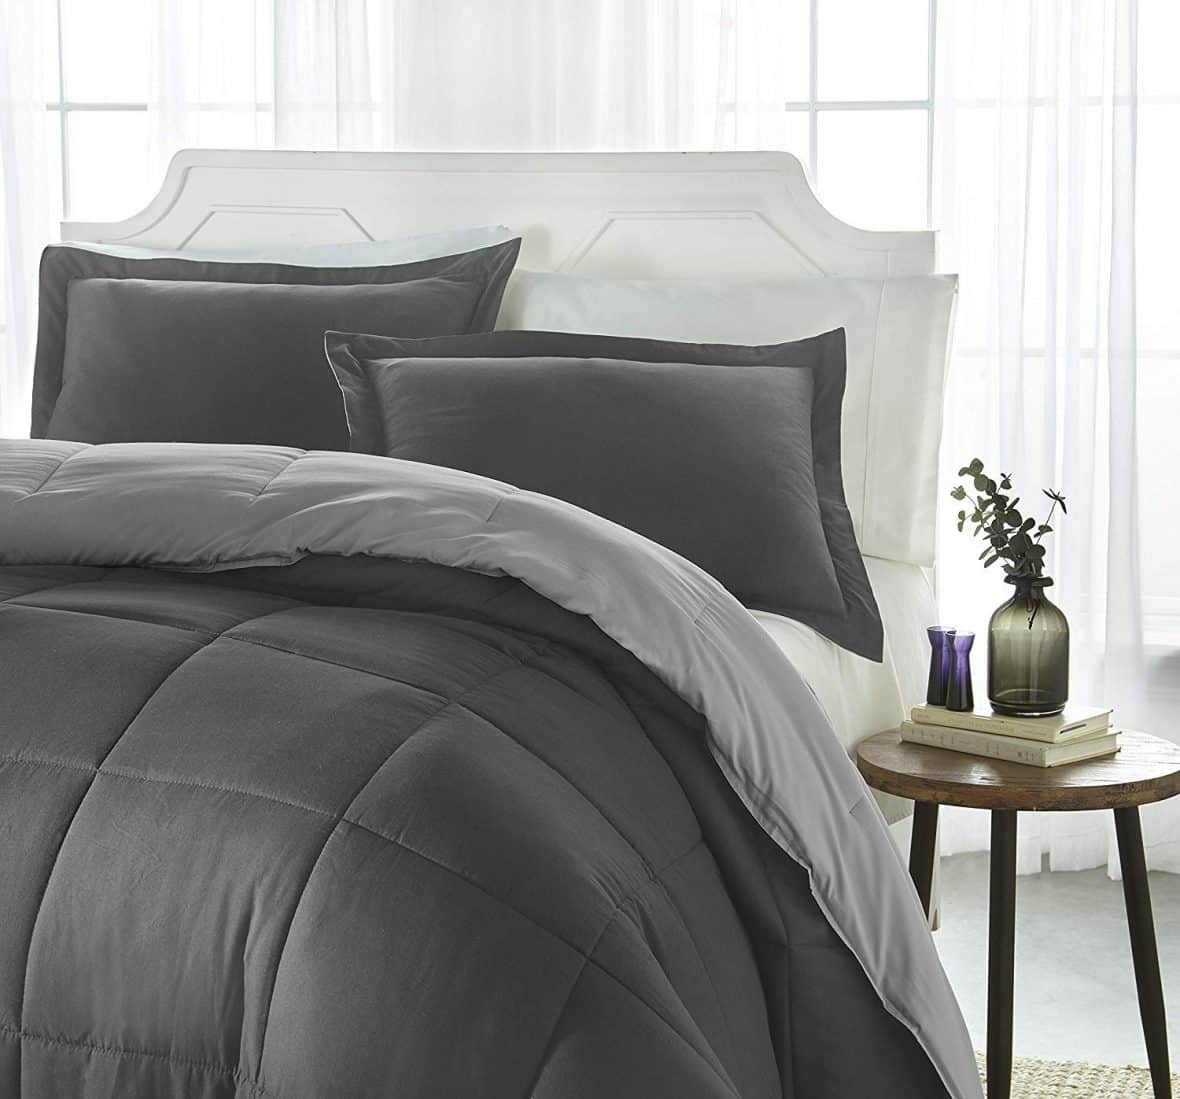 Ienjoy Down Comforter Set 30 99 My Bjs Wholesale Club